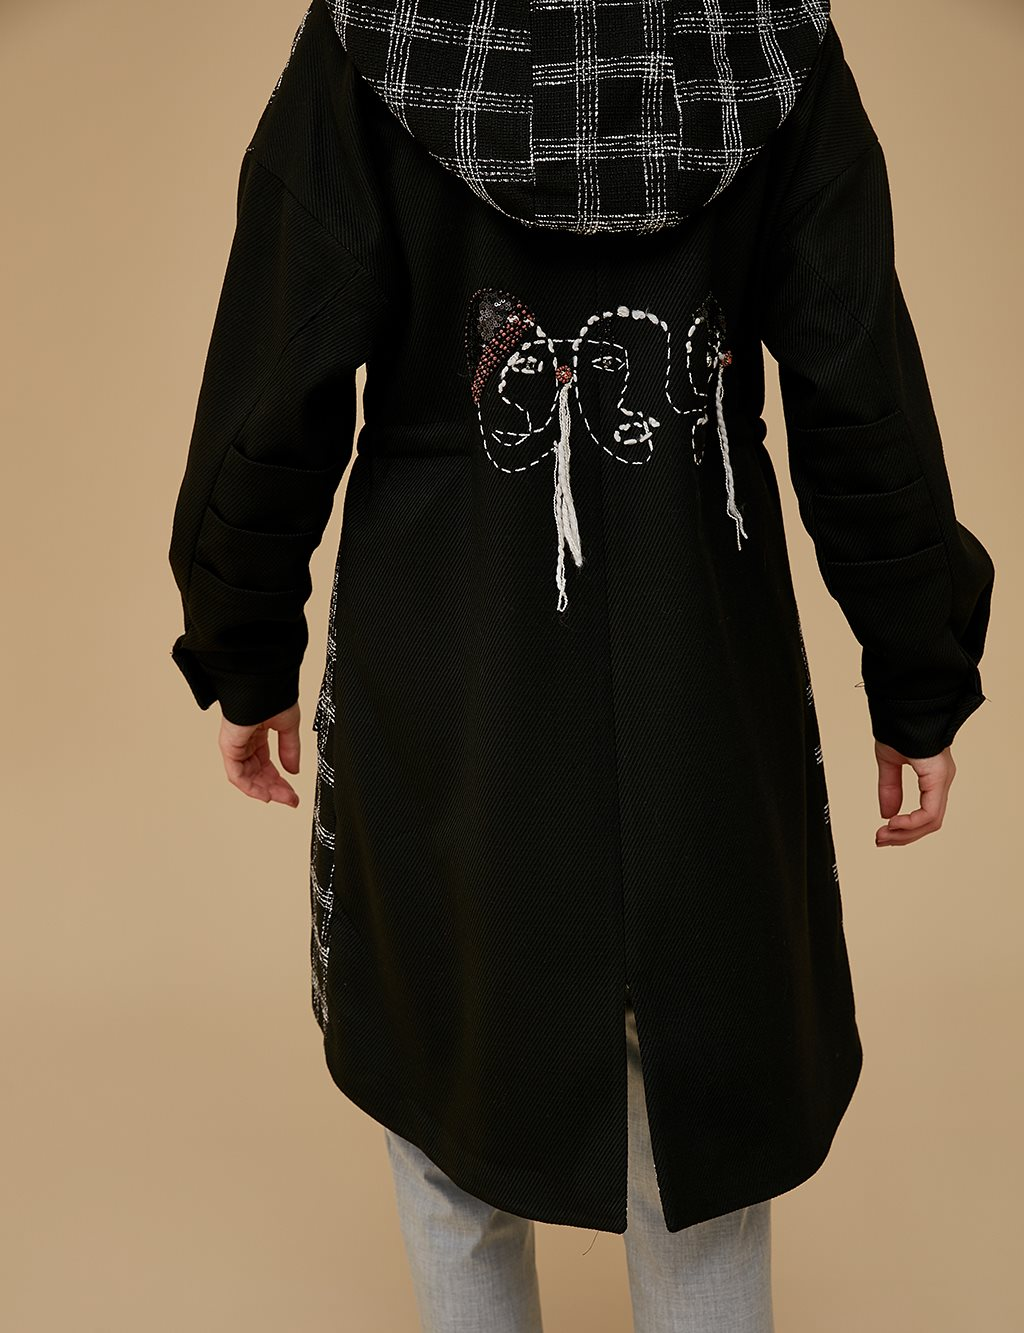 Embroidered Coat A9 17027 Black